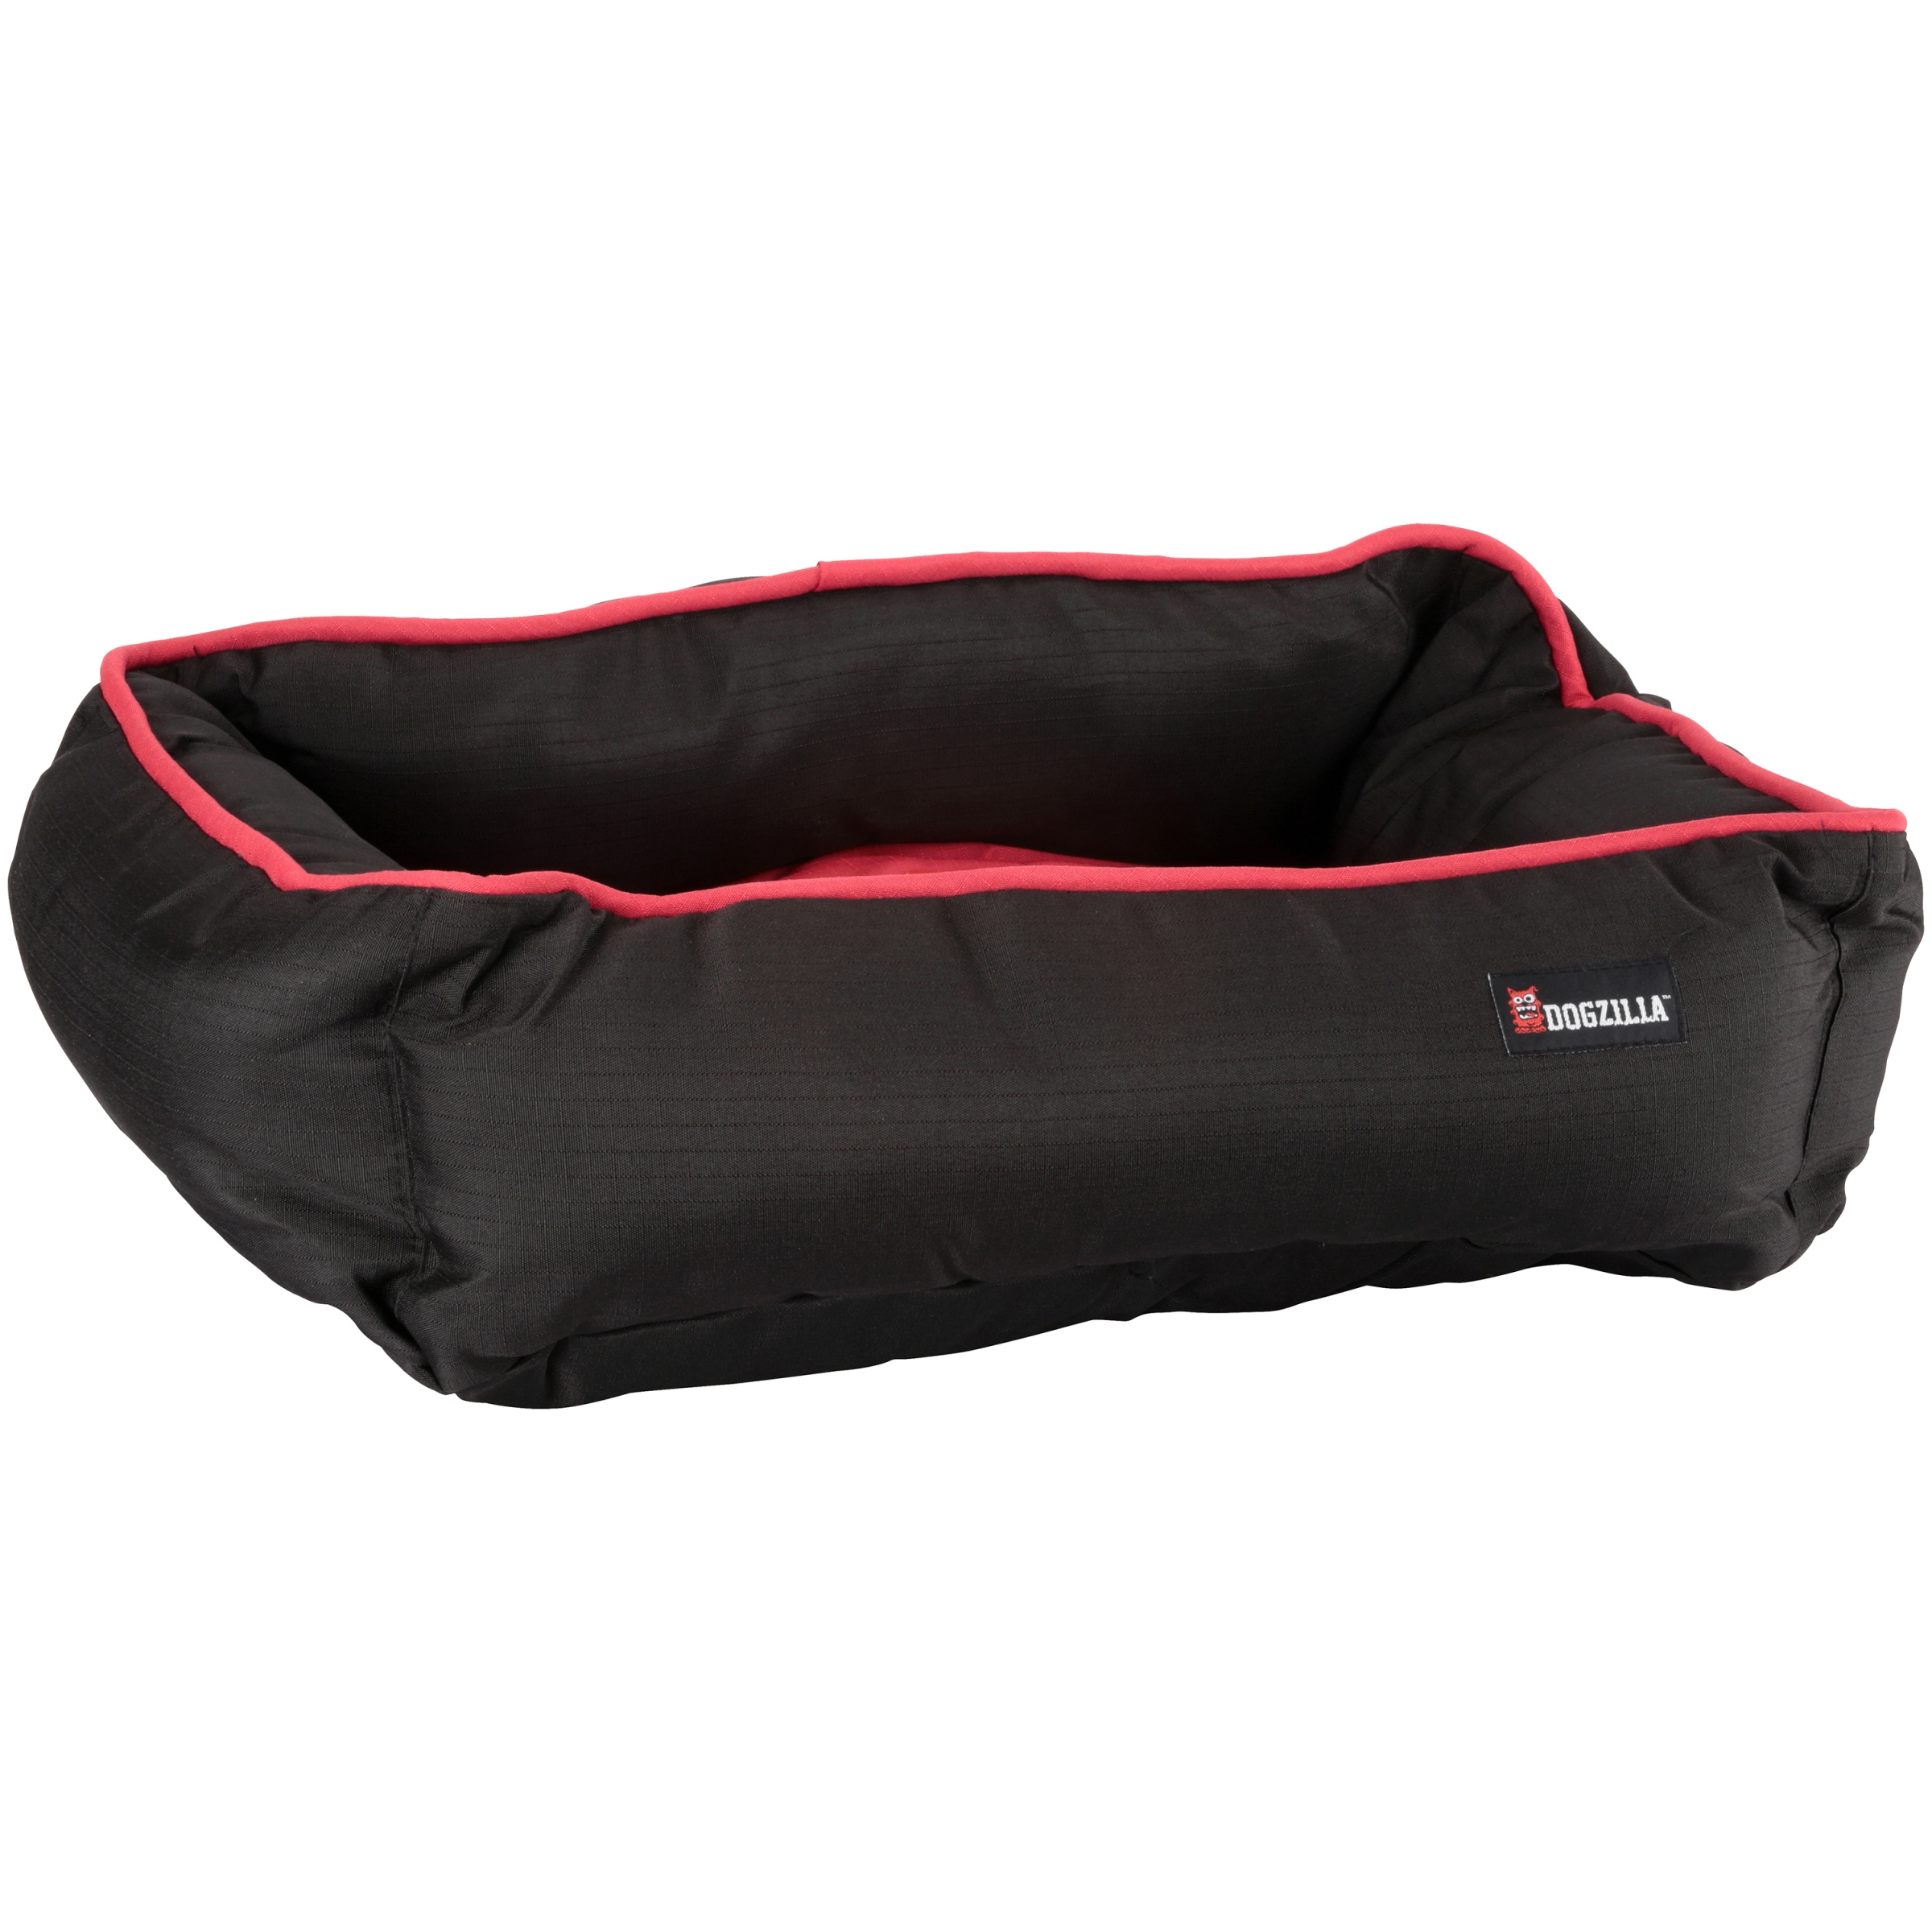 Petmate Dogzilla Rectangular Lounger Dog Bed, 22x18-in